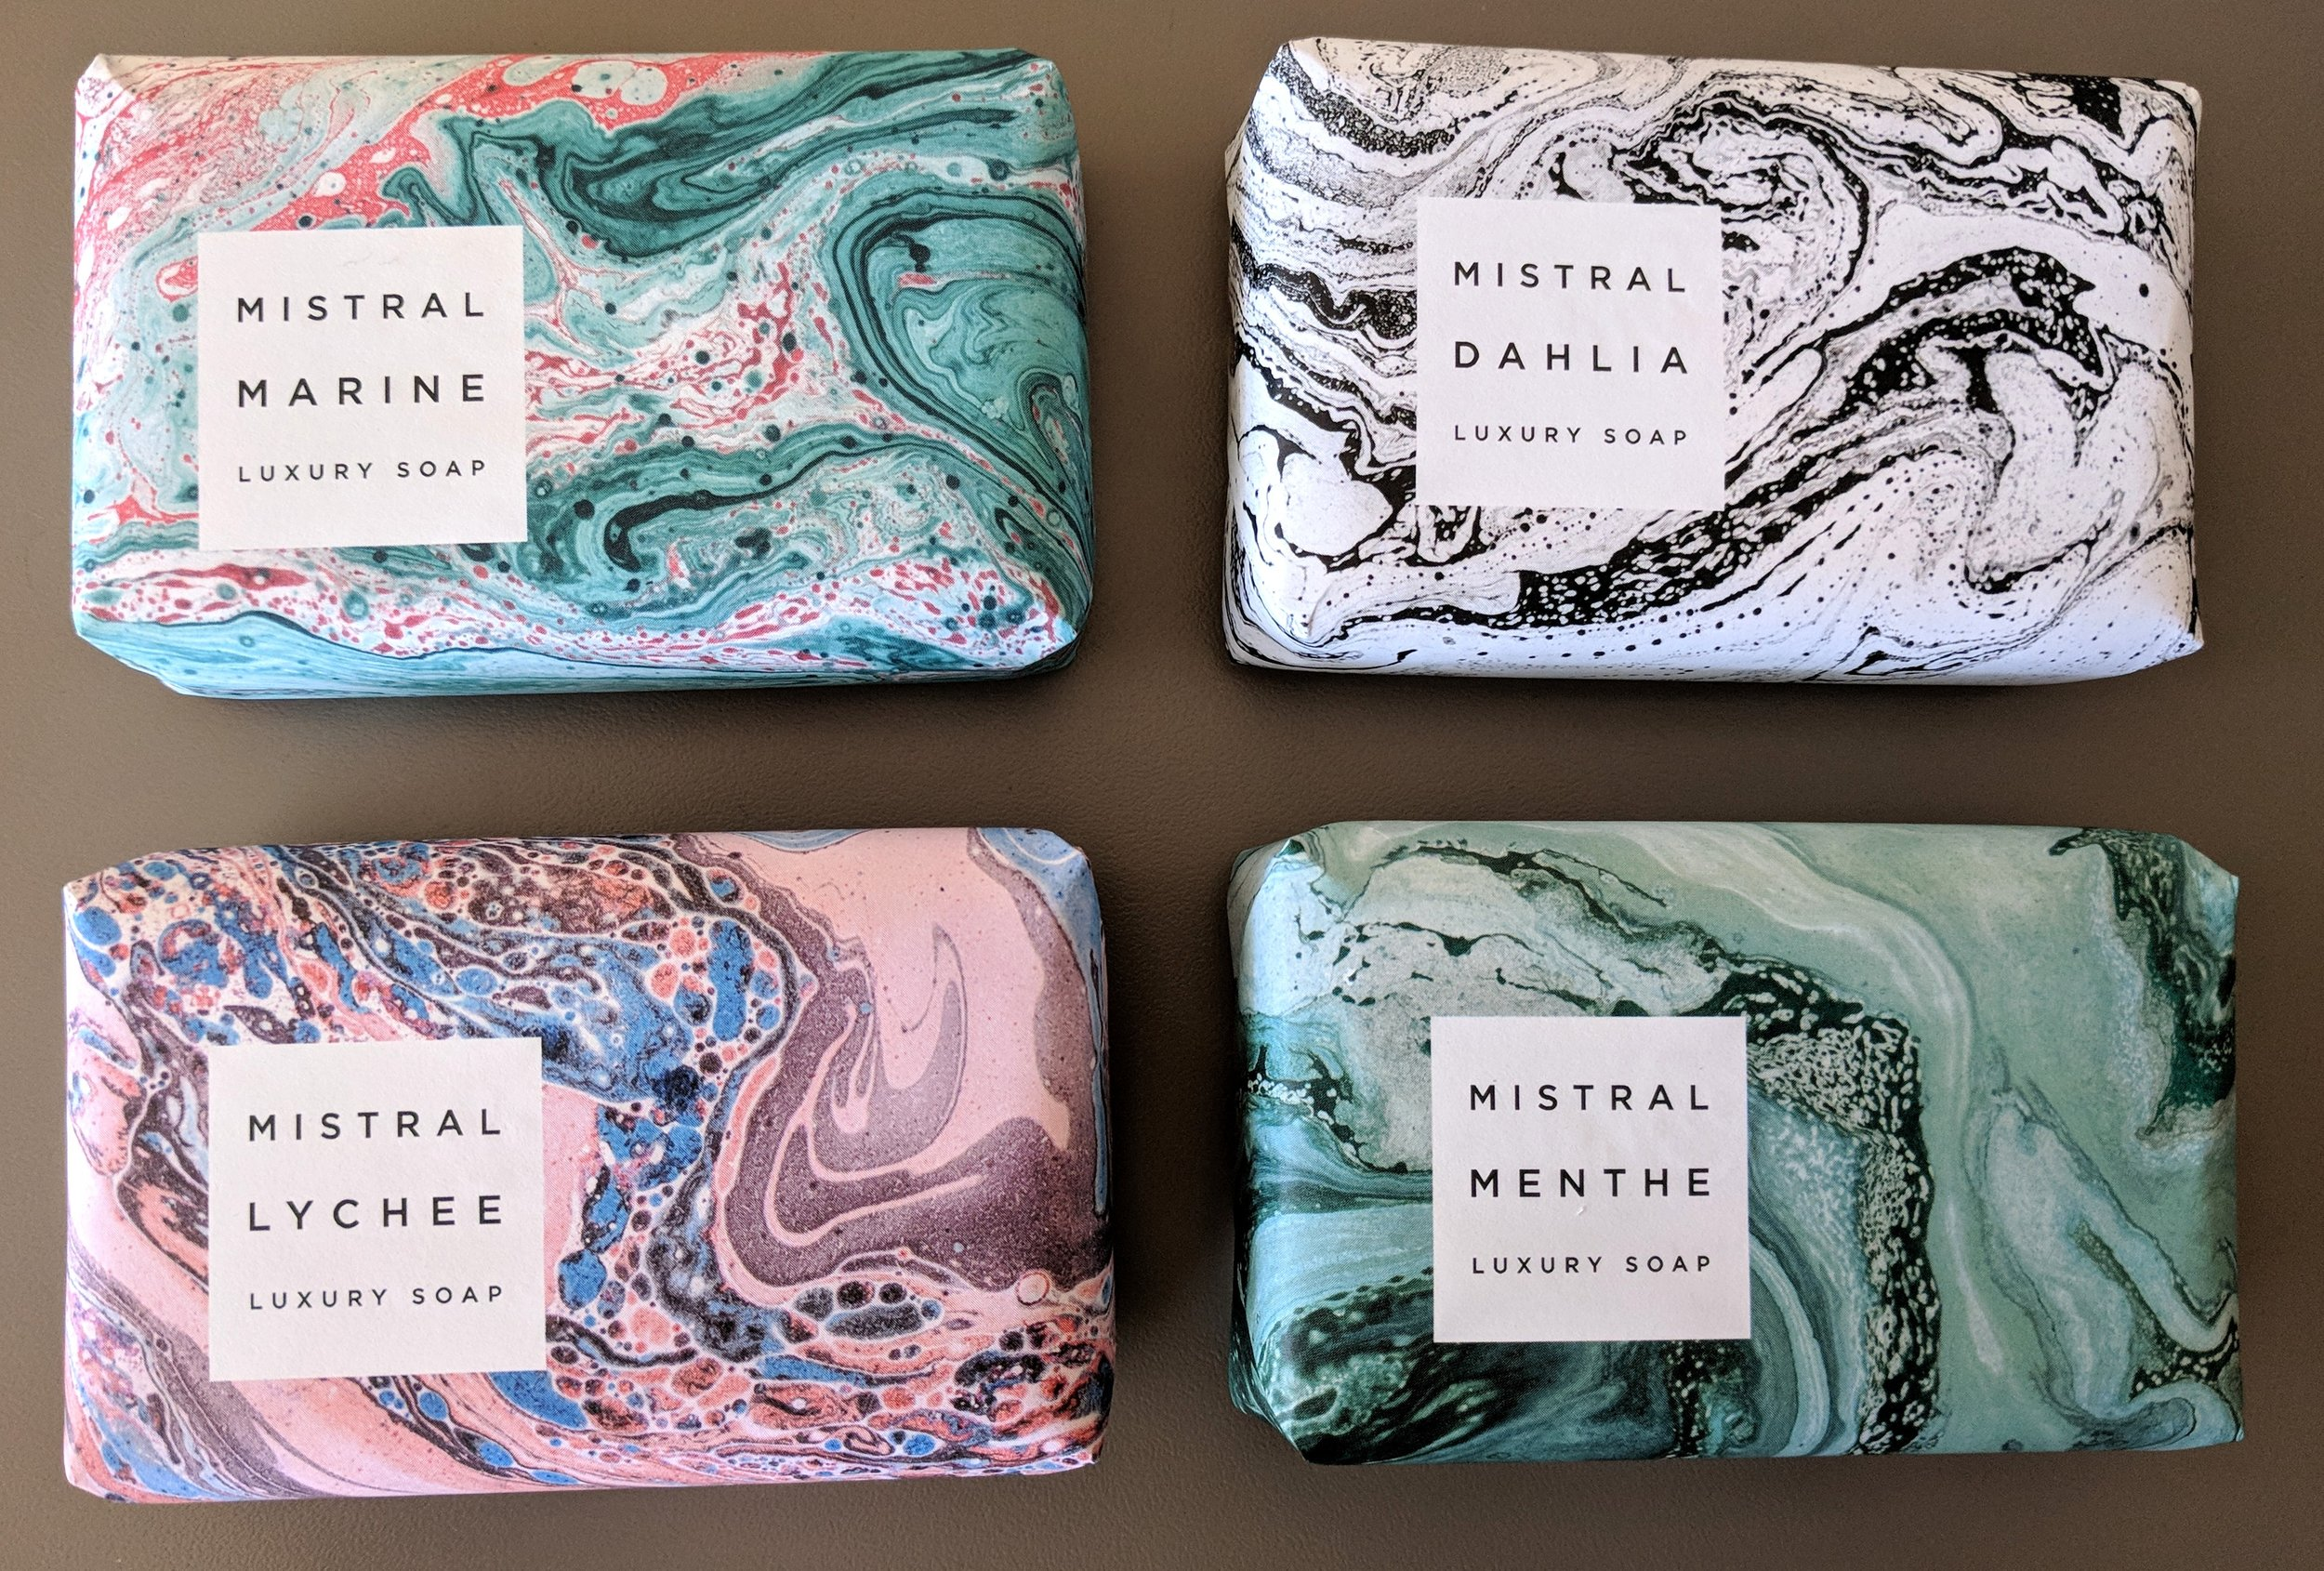 Mistral Luxury Soap Mint, Marine, Lychee Rose and Dahlia